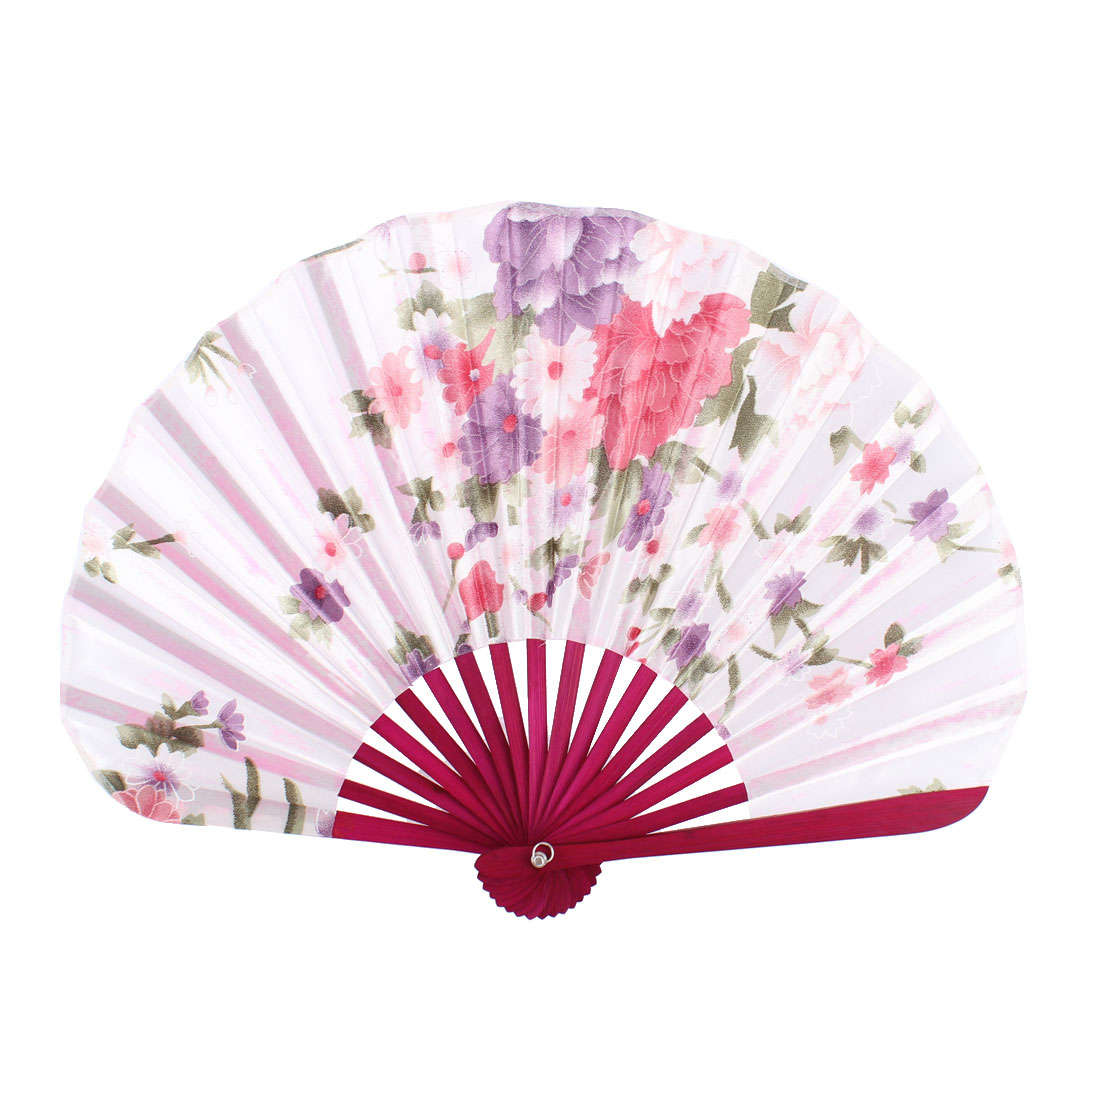 Wood Ribs Seashell Shape Chrysanthemum Pattern Folding Hand Fan White Burgundy